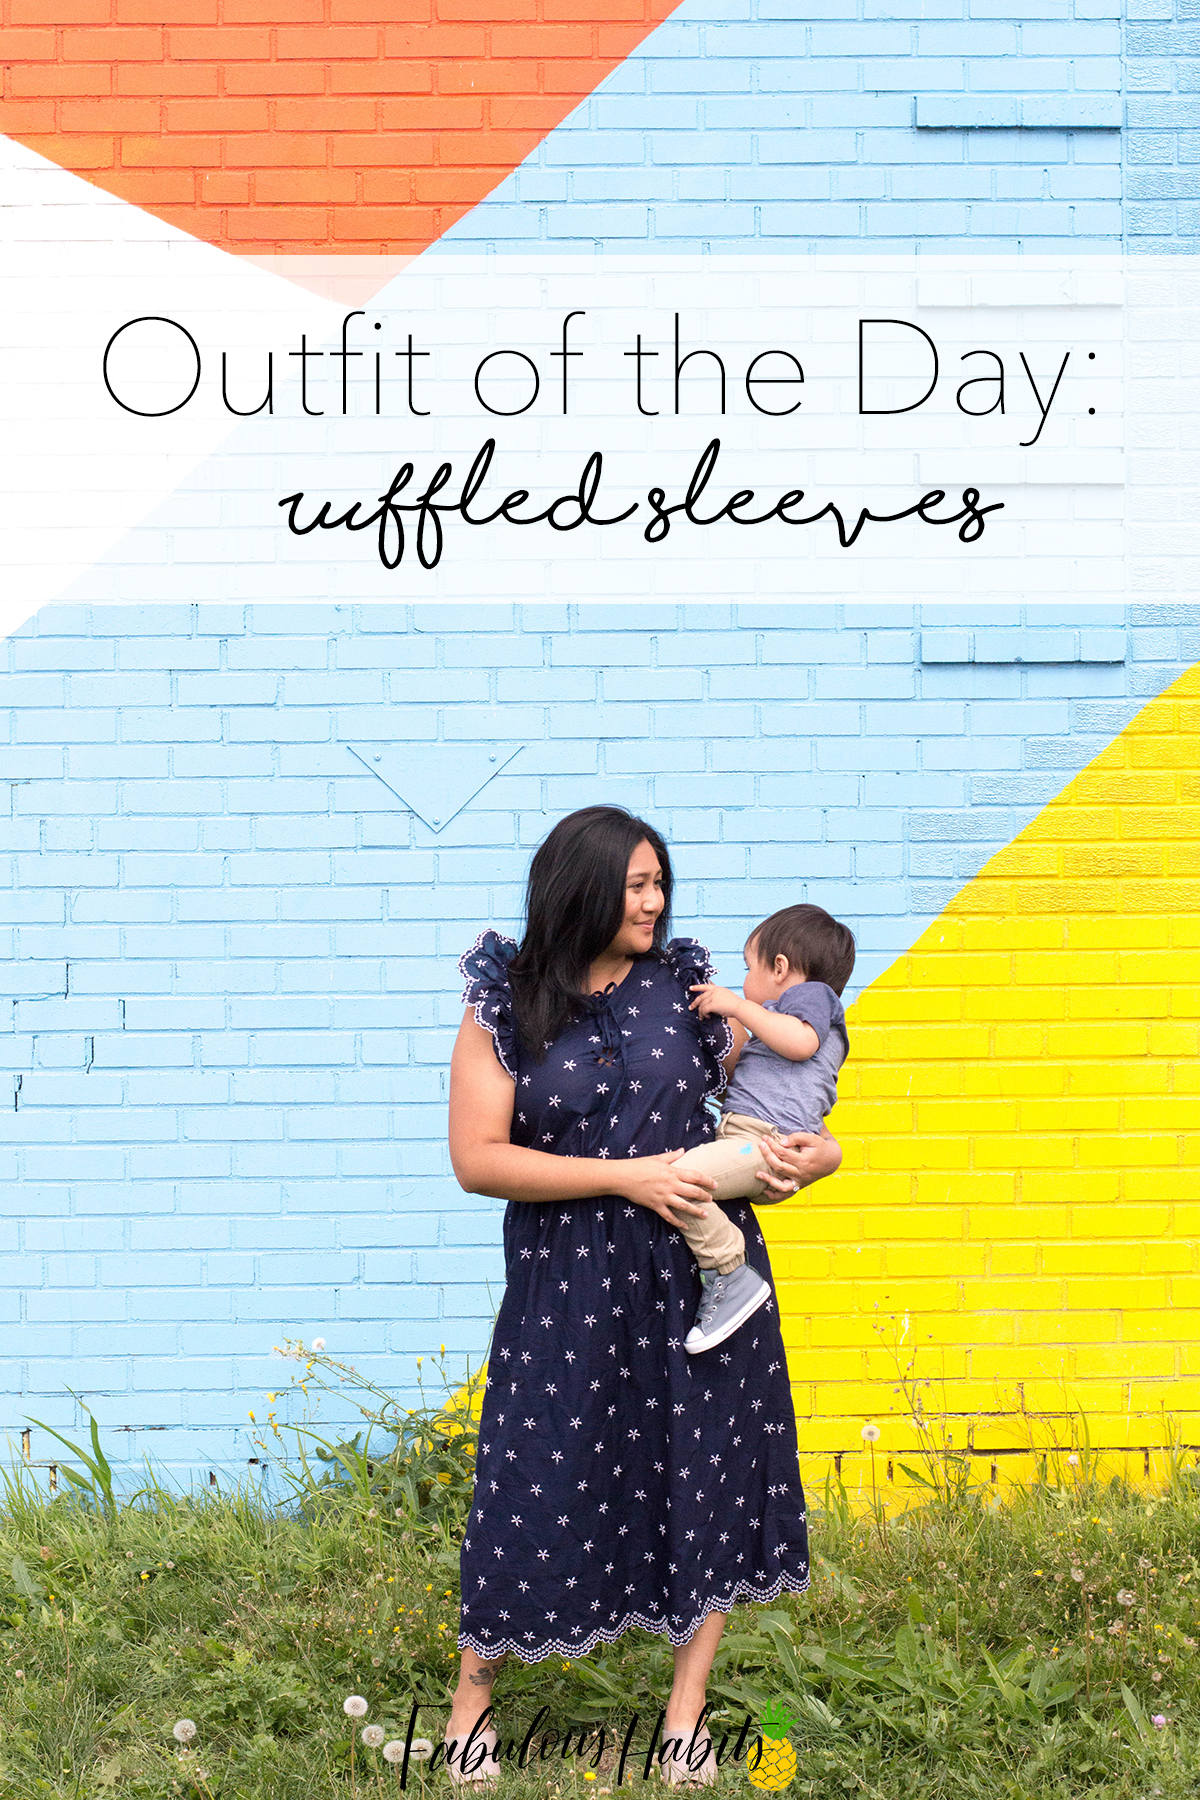 How I'm transitioning my favorite summer dress into the autumn season – ruffled sleeves and all.